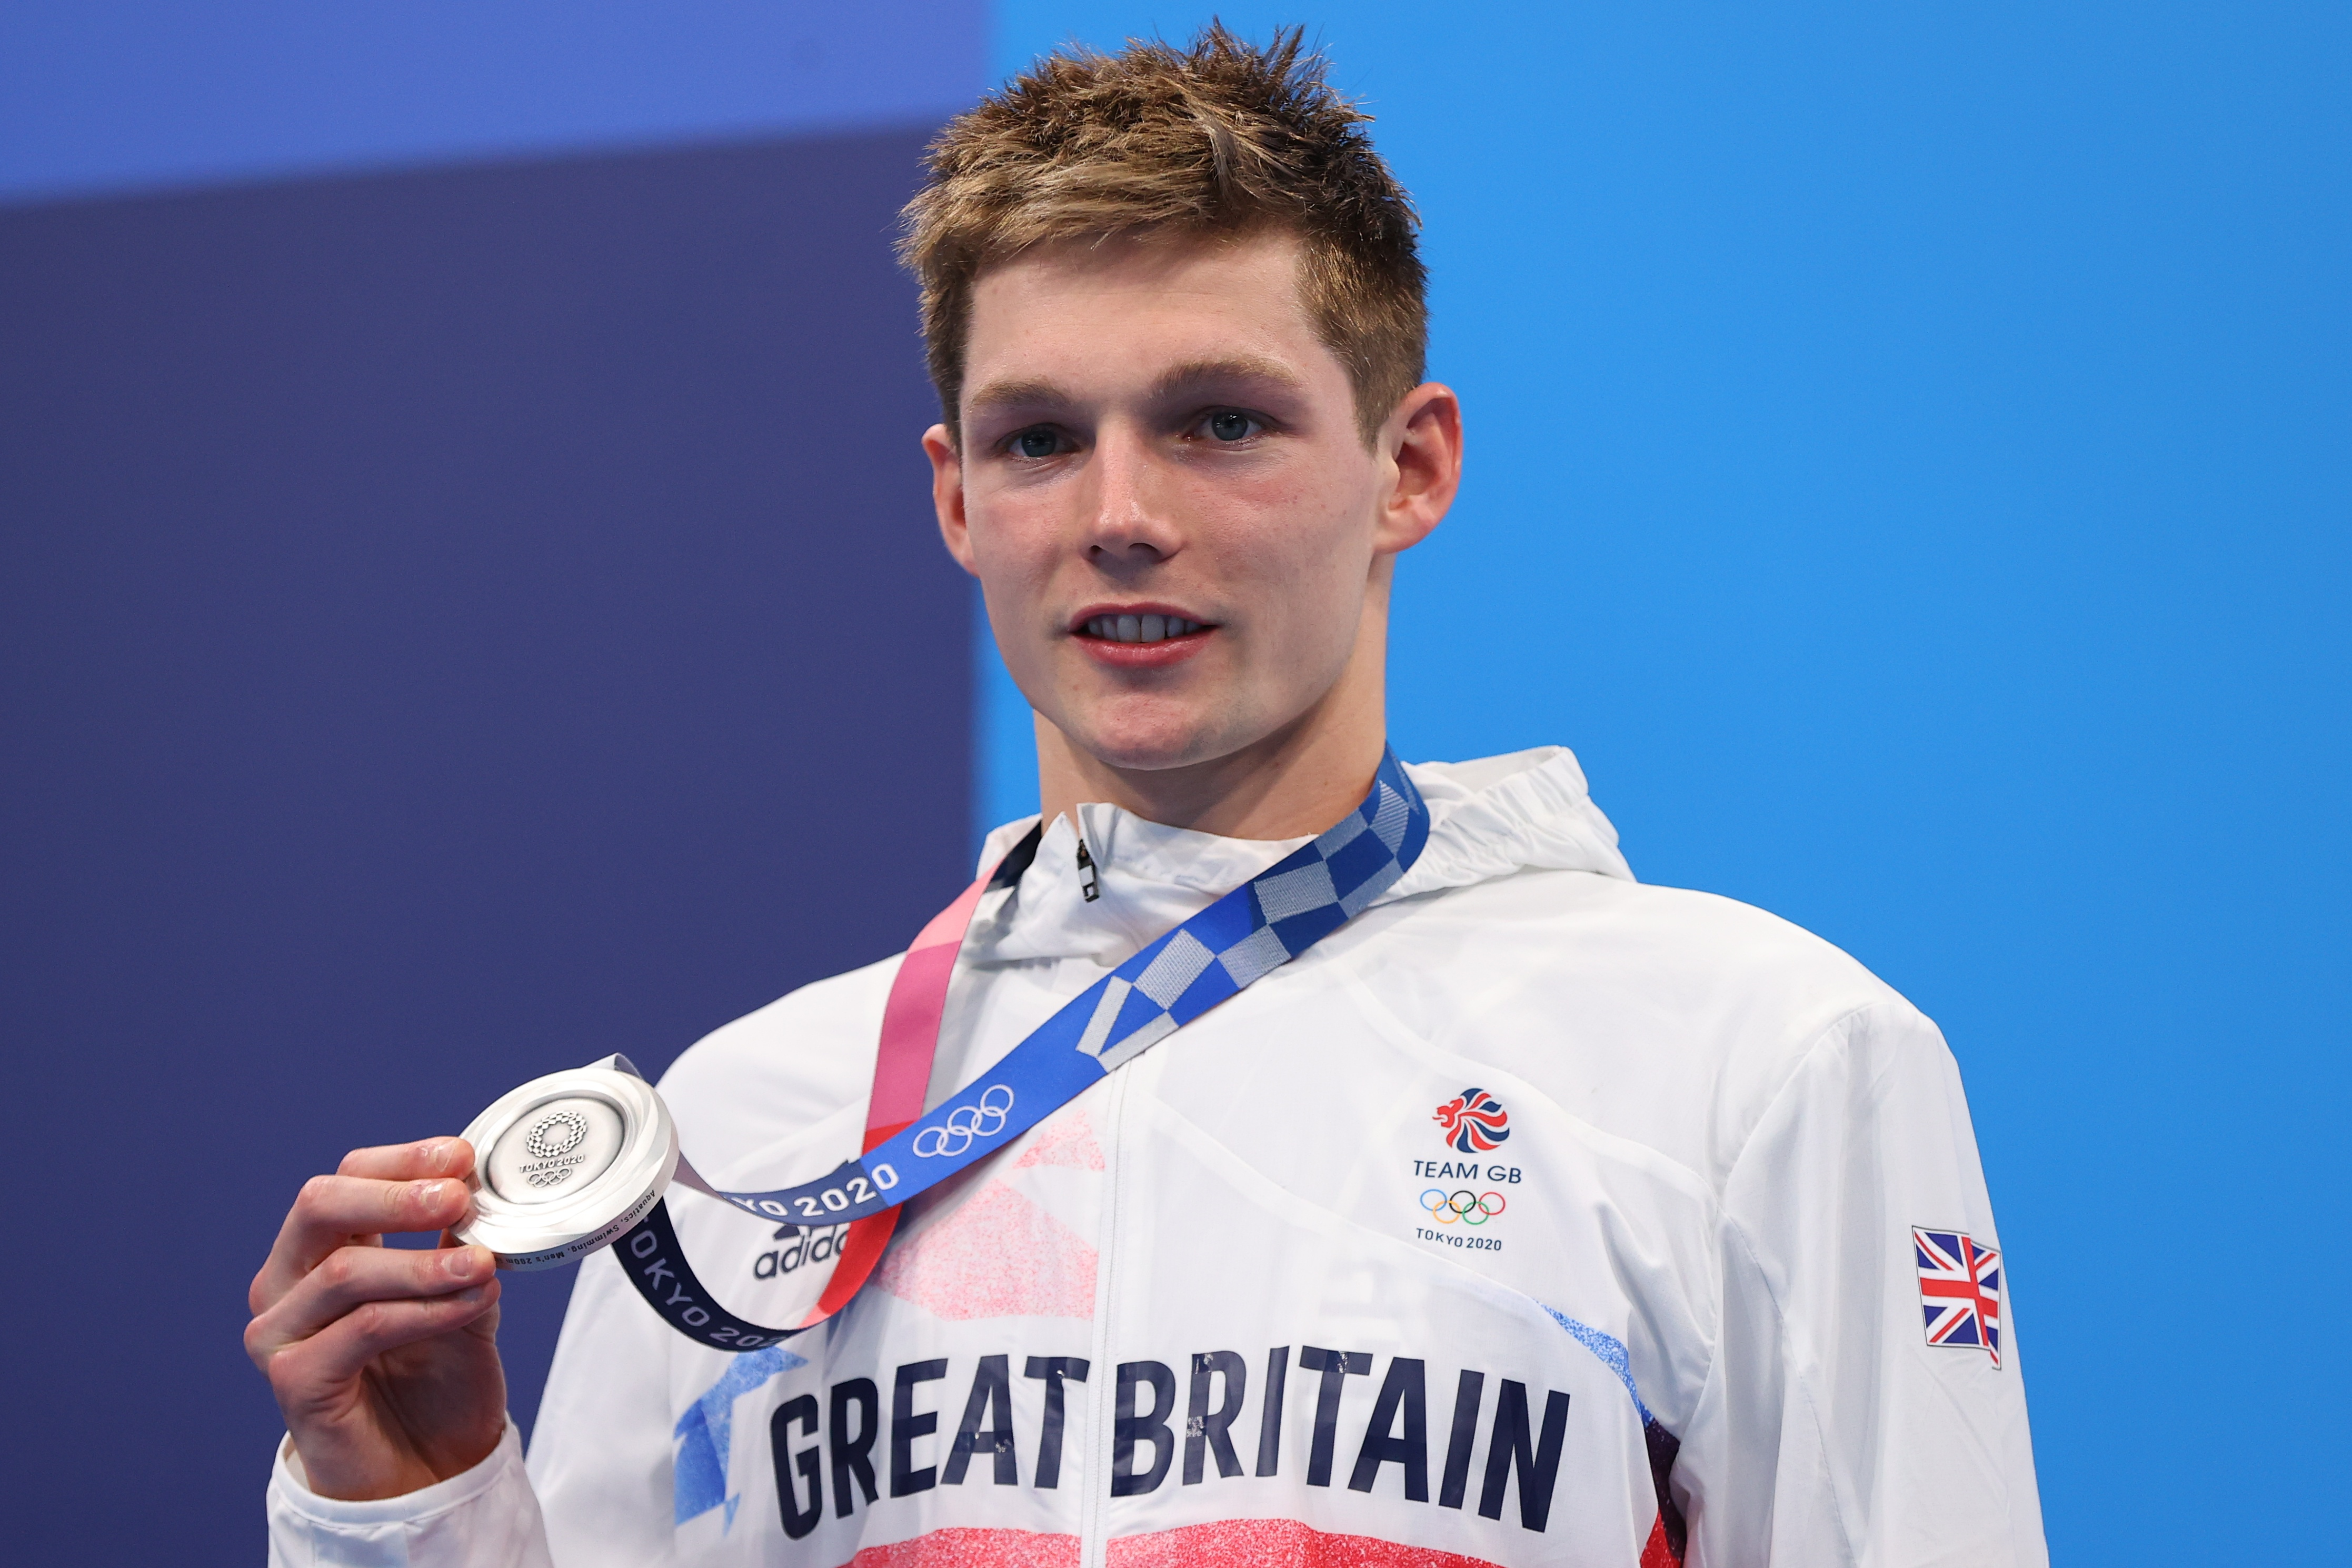 Tokyo 2020 Olympics - Swimming - Men's 200m Individual Medley - Medal Ceremony - Tokyo Aquatics Centre - Tokyo, Japan - July 30, 2021. Duncan Scott of Britain poses on the podium with the silver medal REUTERS/Marko Djurica